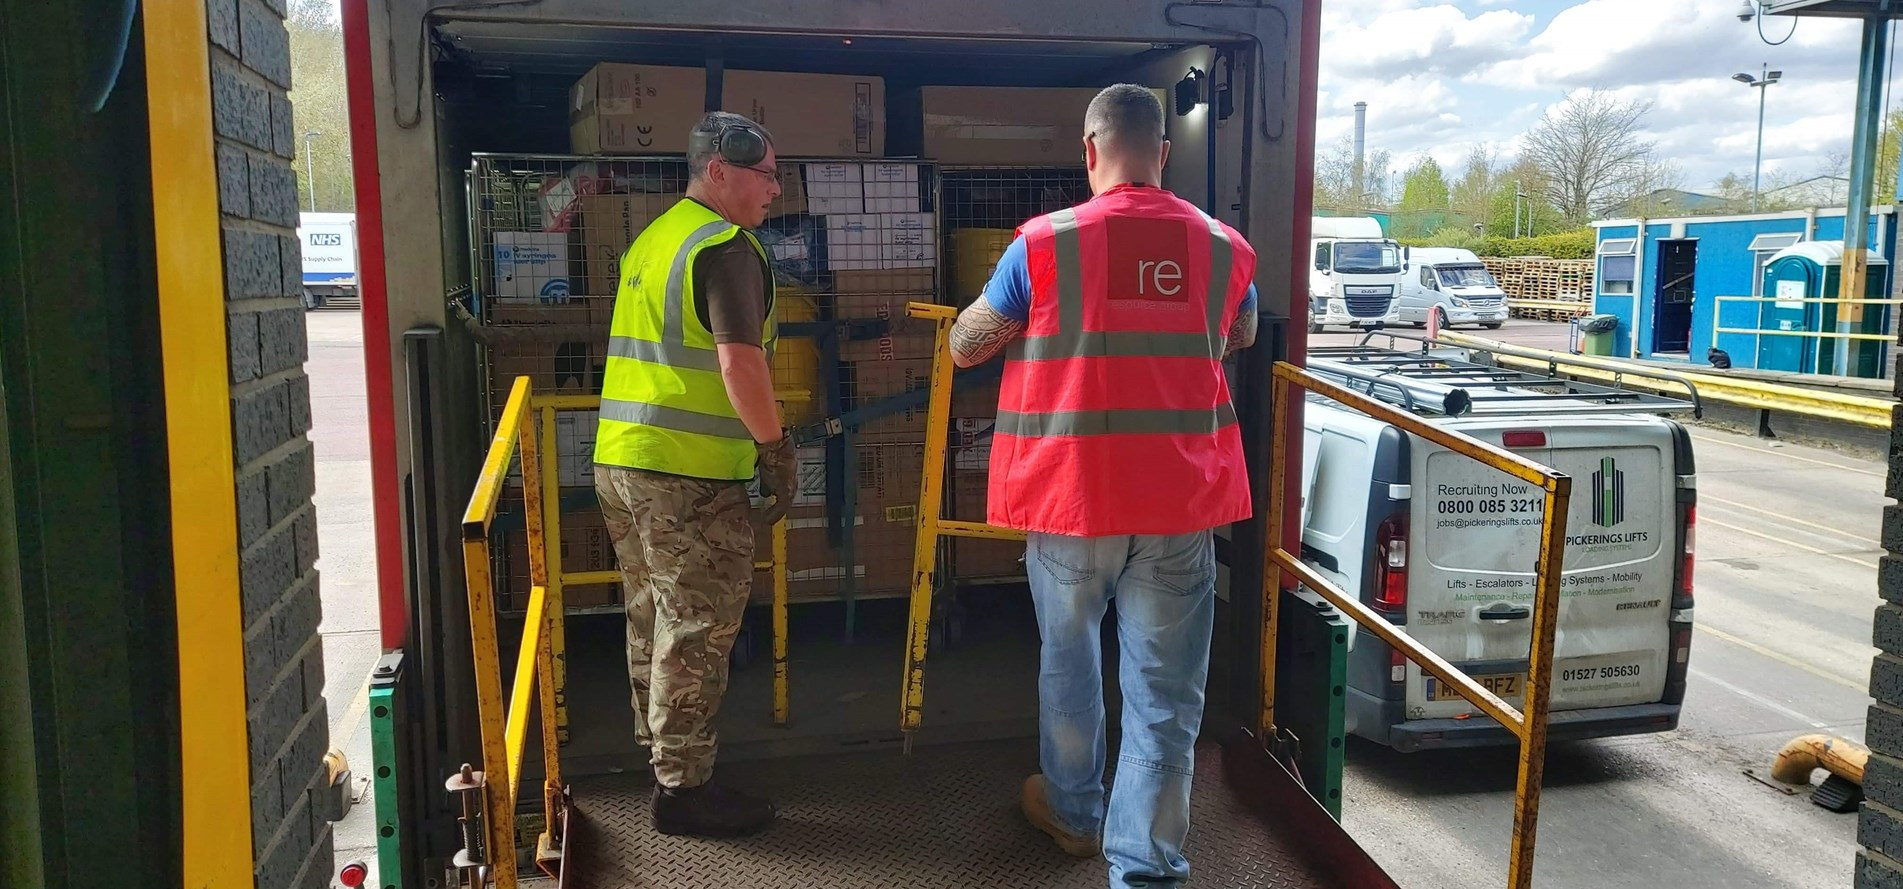 151 RLC Maidstone Distribution Centre NHS Task Op RESCRIPT 2.jpg